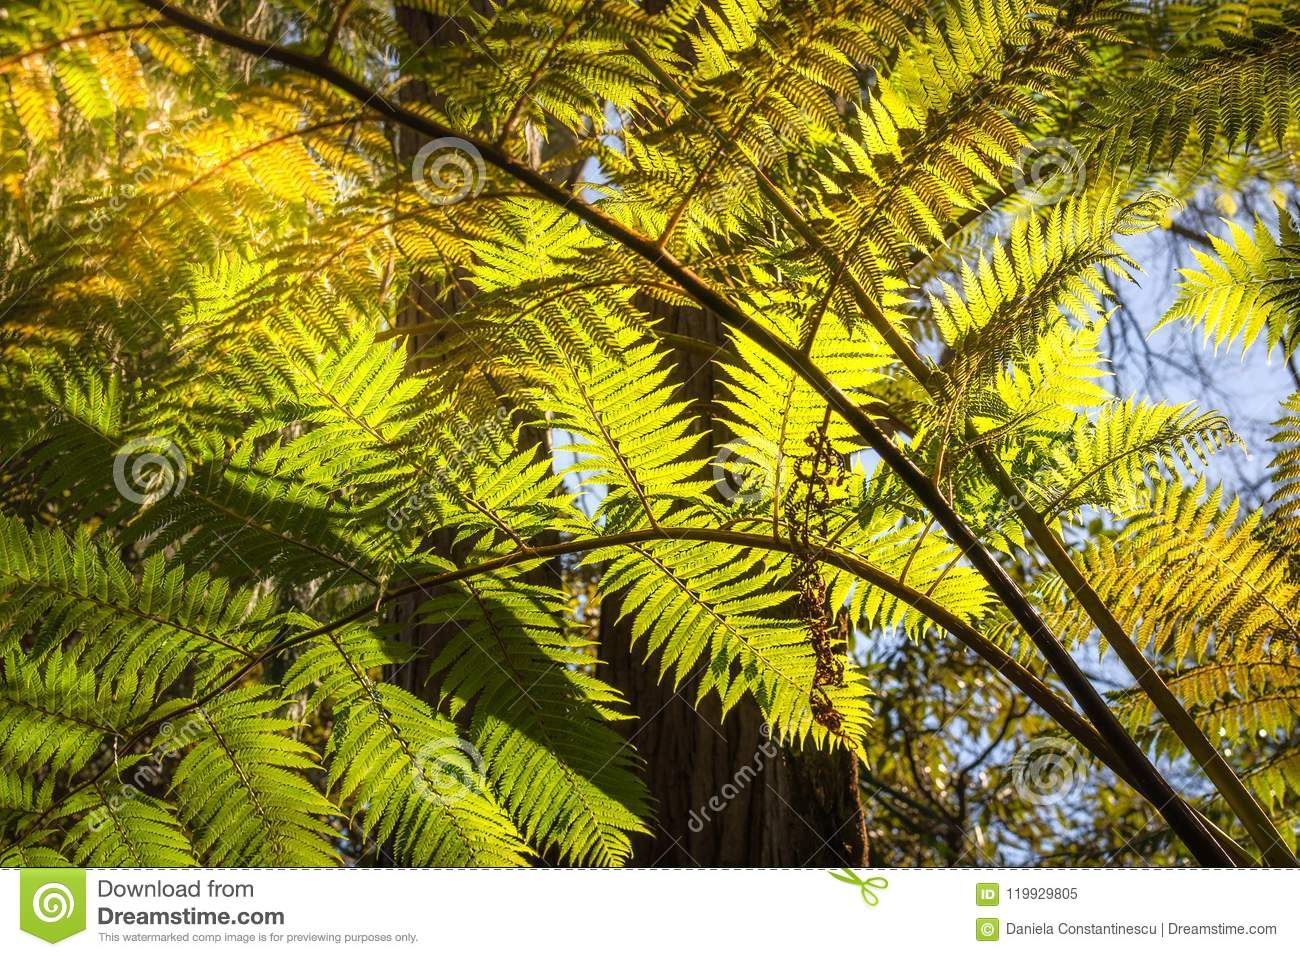 Download Looking Up To A Beautiful Sunglowing Fern In A Tropical Forest Stock Image - Image of fern, foliage: 119929805